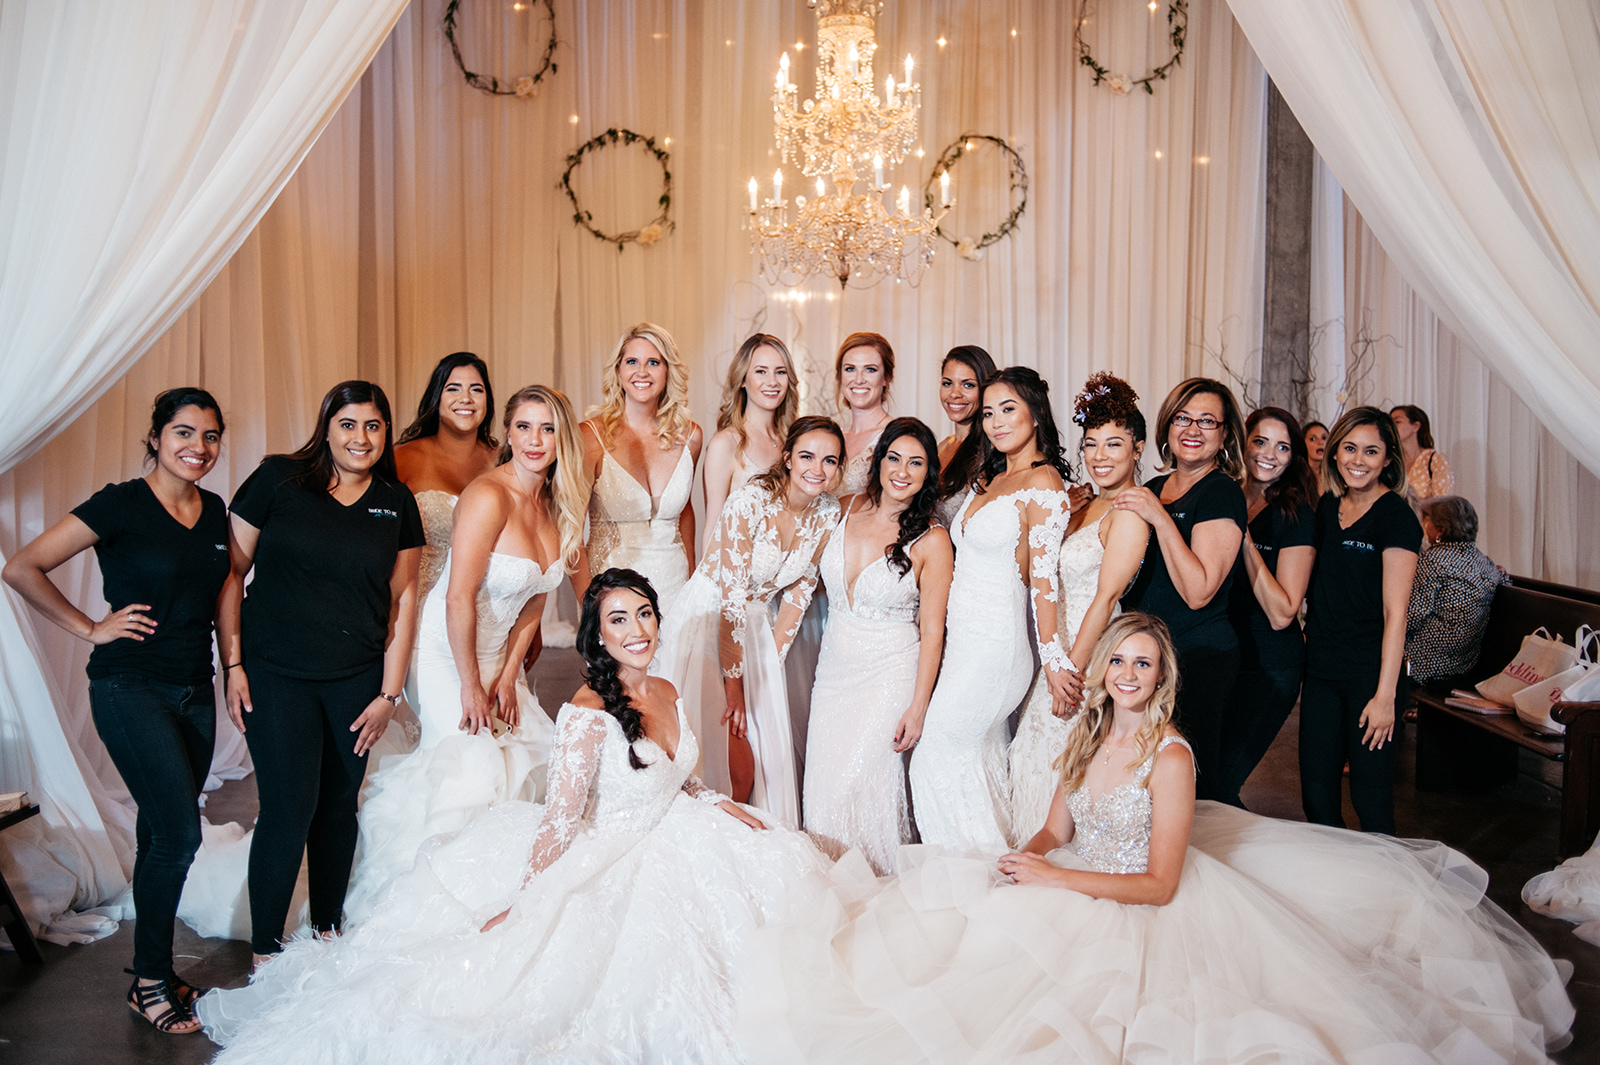 Our lovely models and the Bride To Be Couture team.